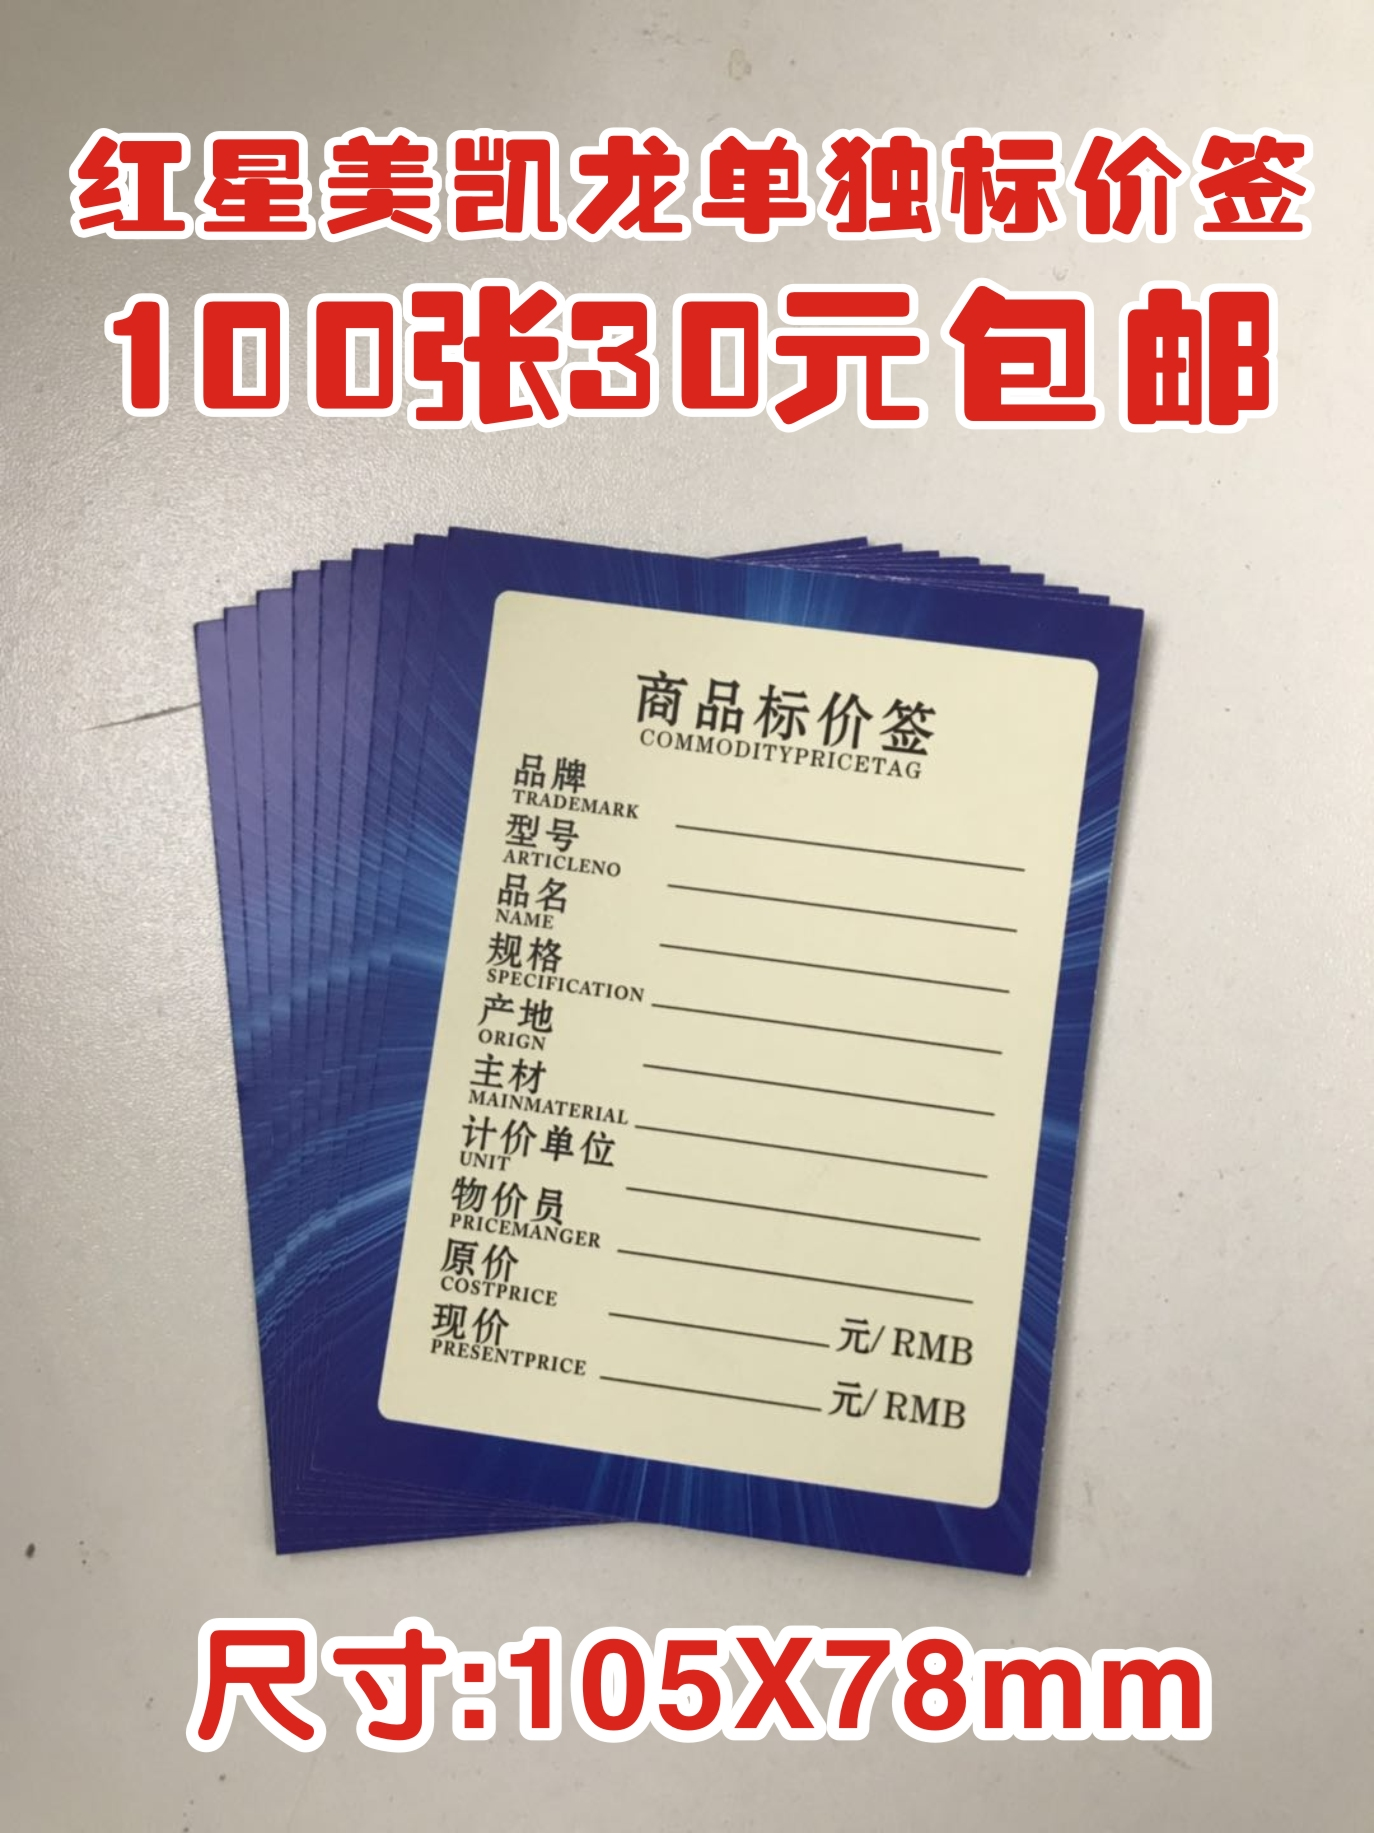 Red star Mei Kailong price tag bathroom price tag shopping mall home price tag merchandise price sign card